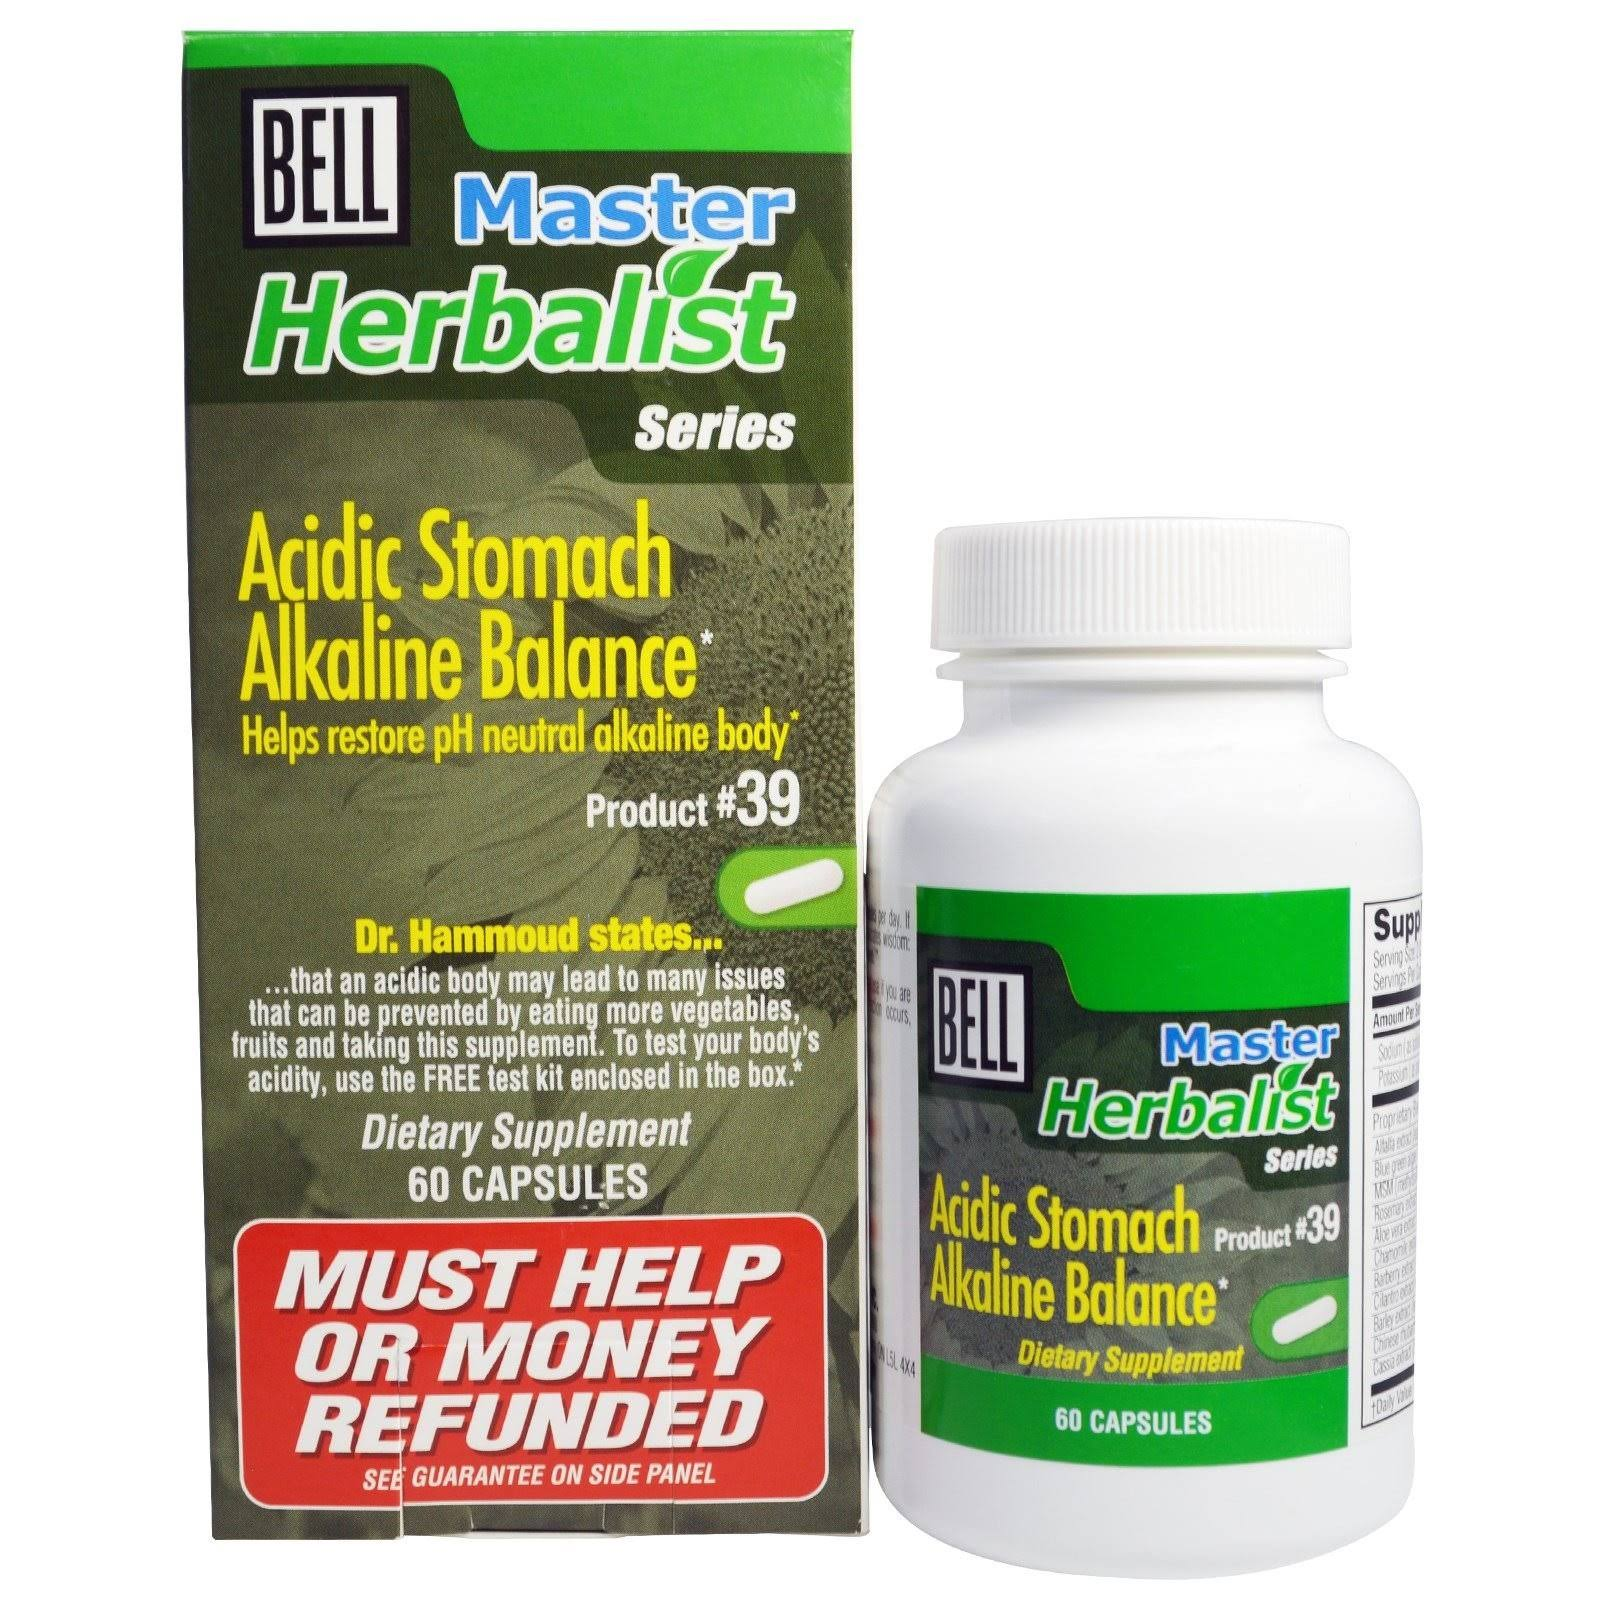 Bell Acidic Stomach Alkaline Balance Capsules - x60